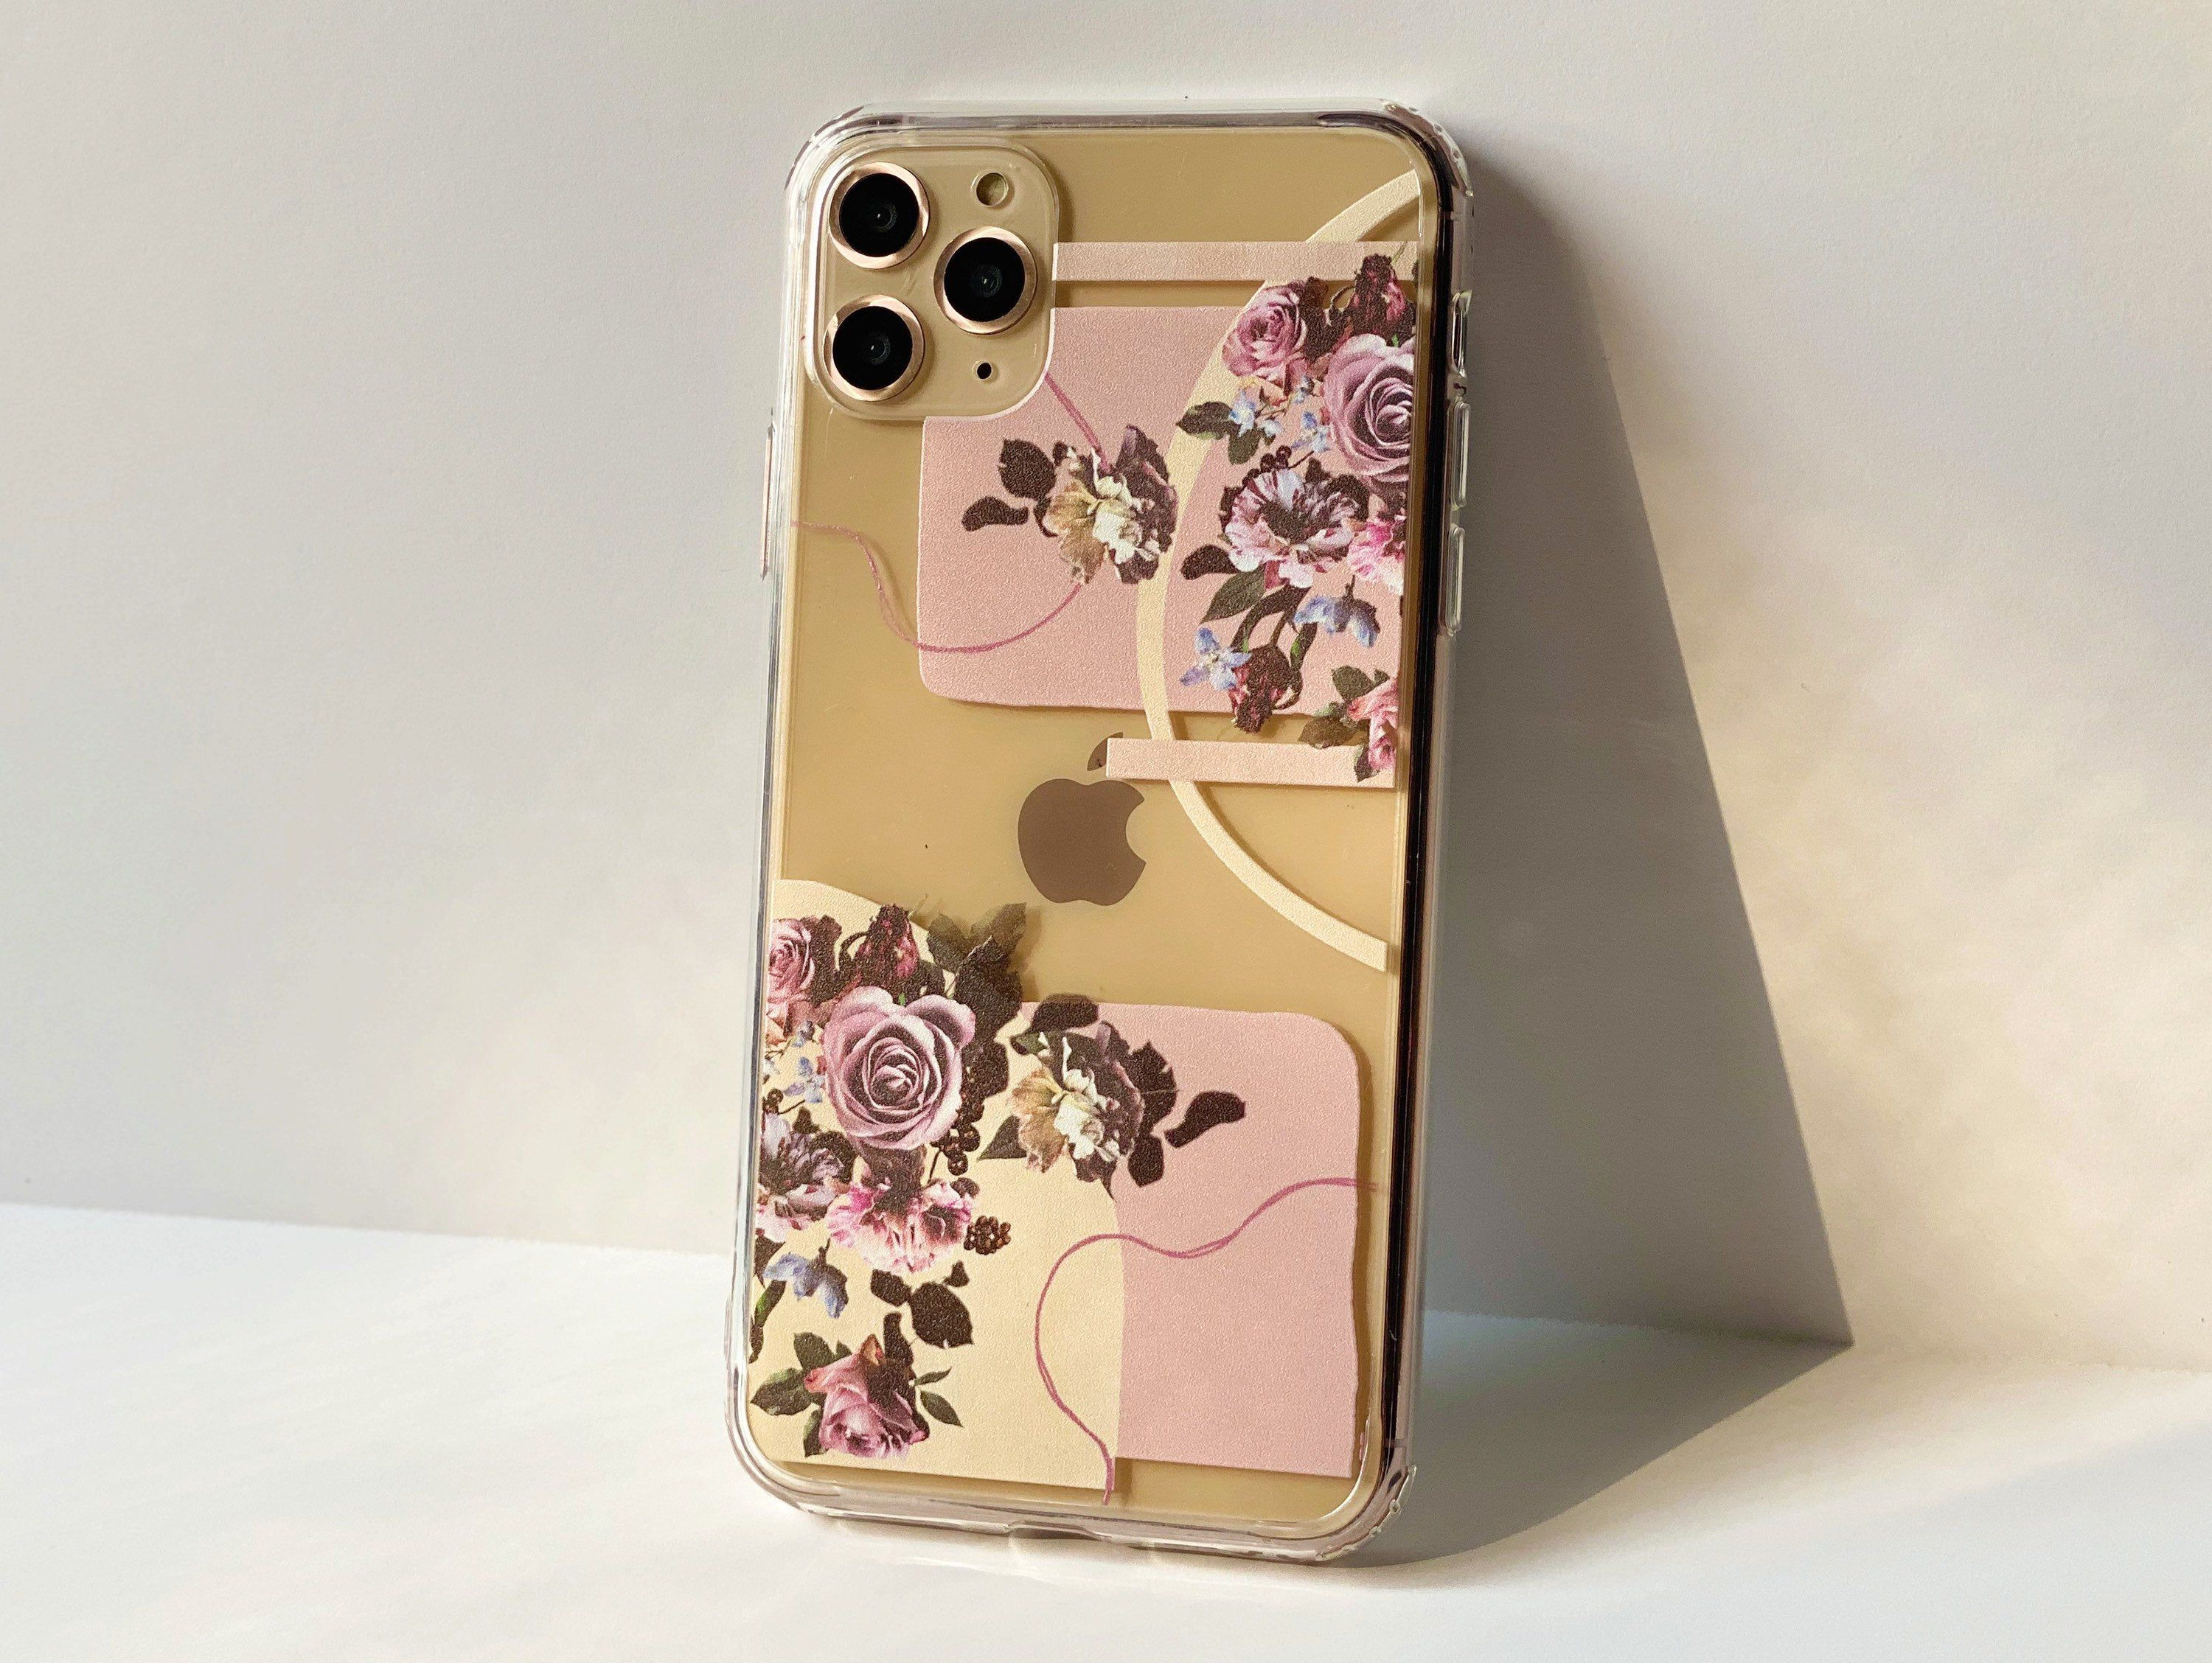 Floral phone case for iphone 12 11 pro max xs x xr 7 8